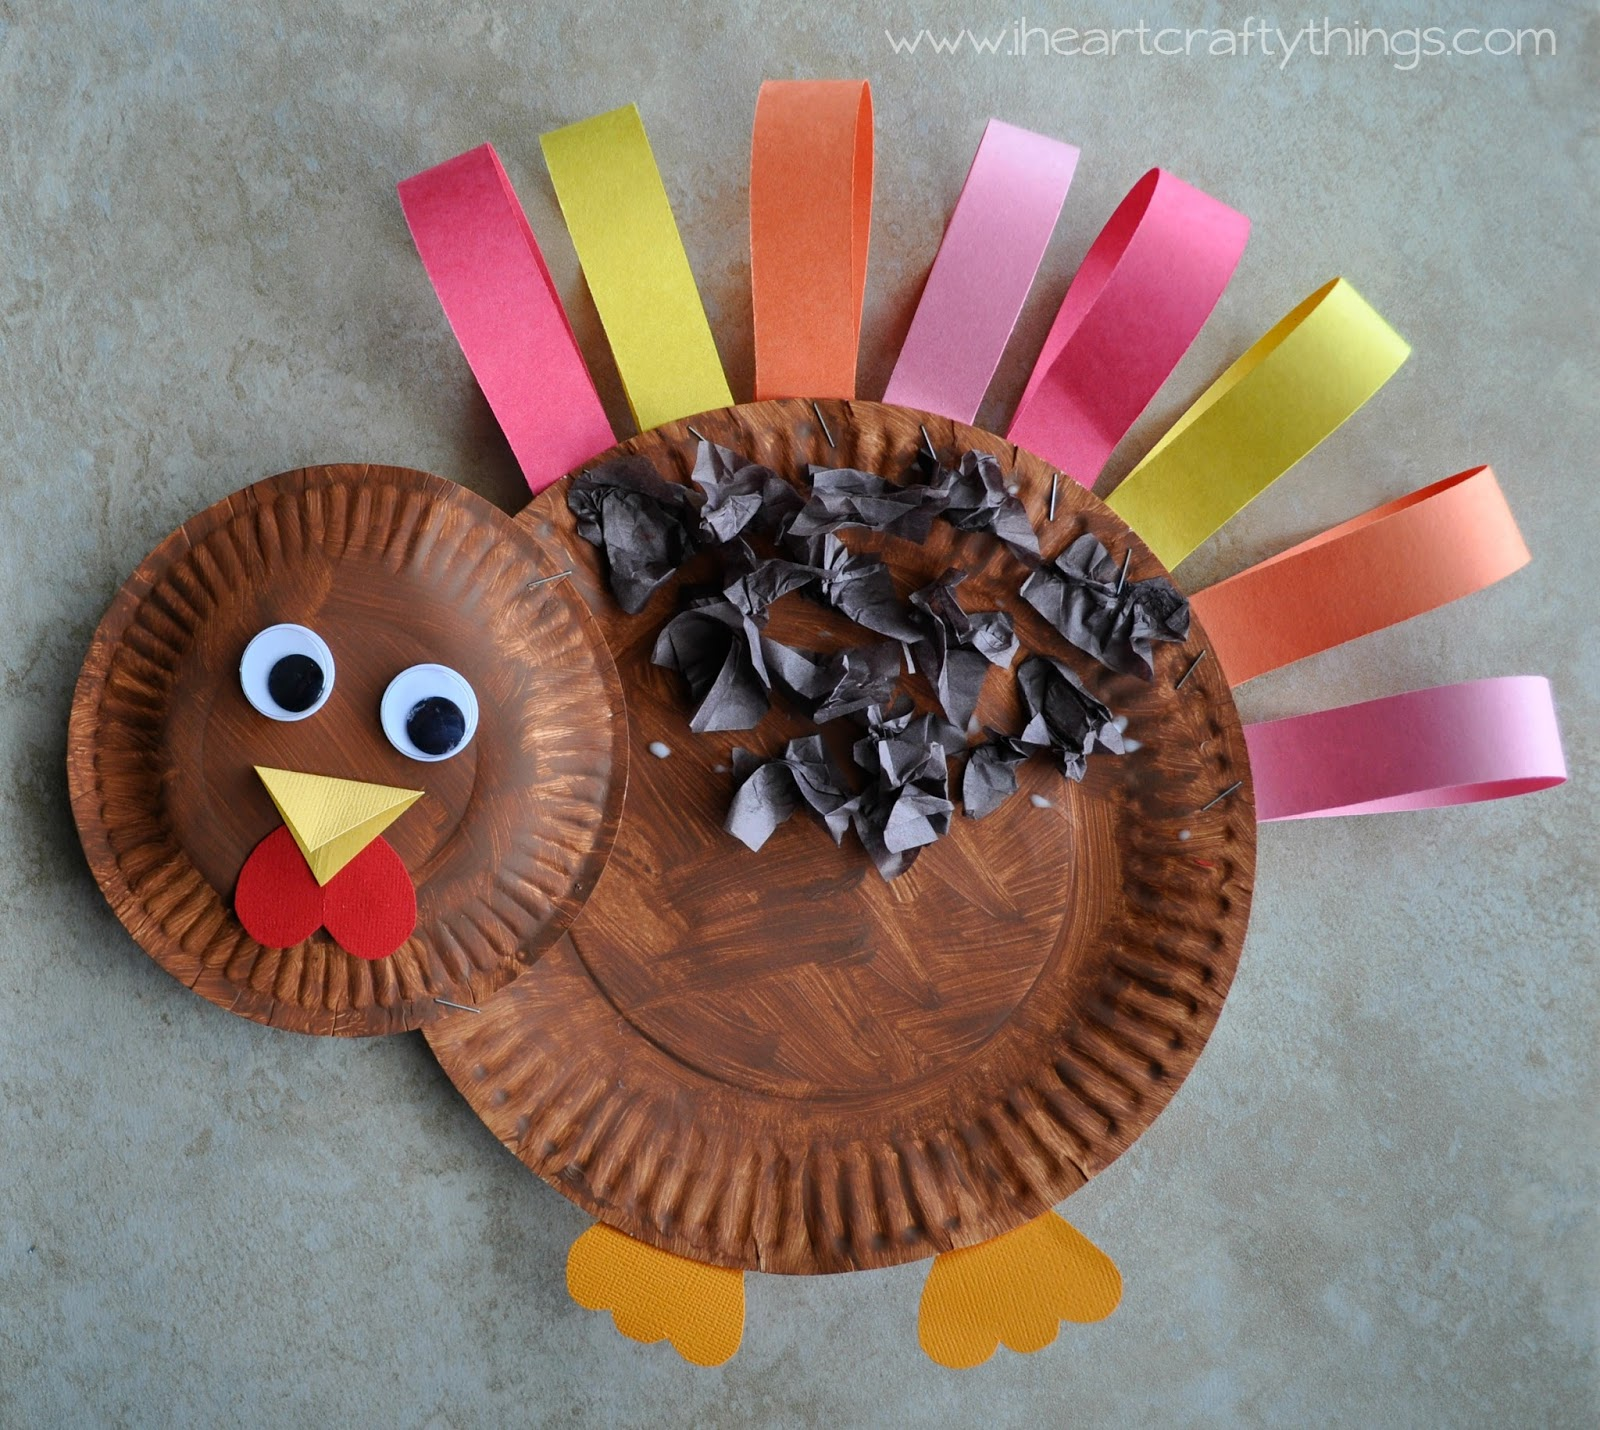 Paper Plate Turkey Craft I Heart Crafty Things